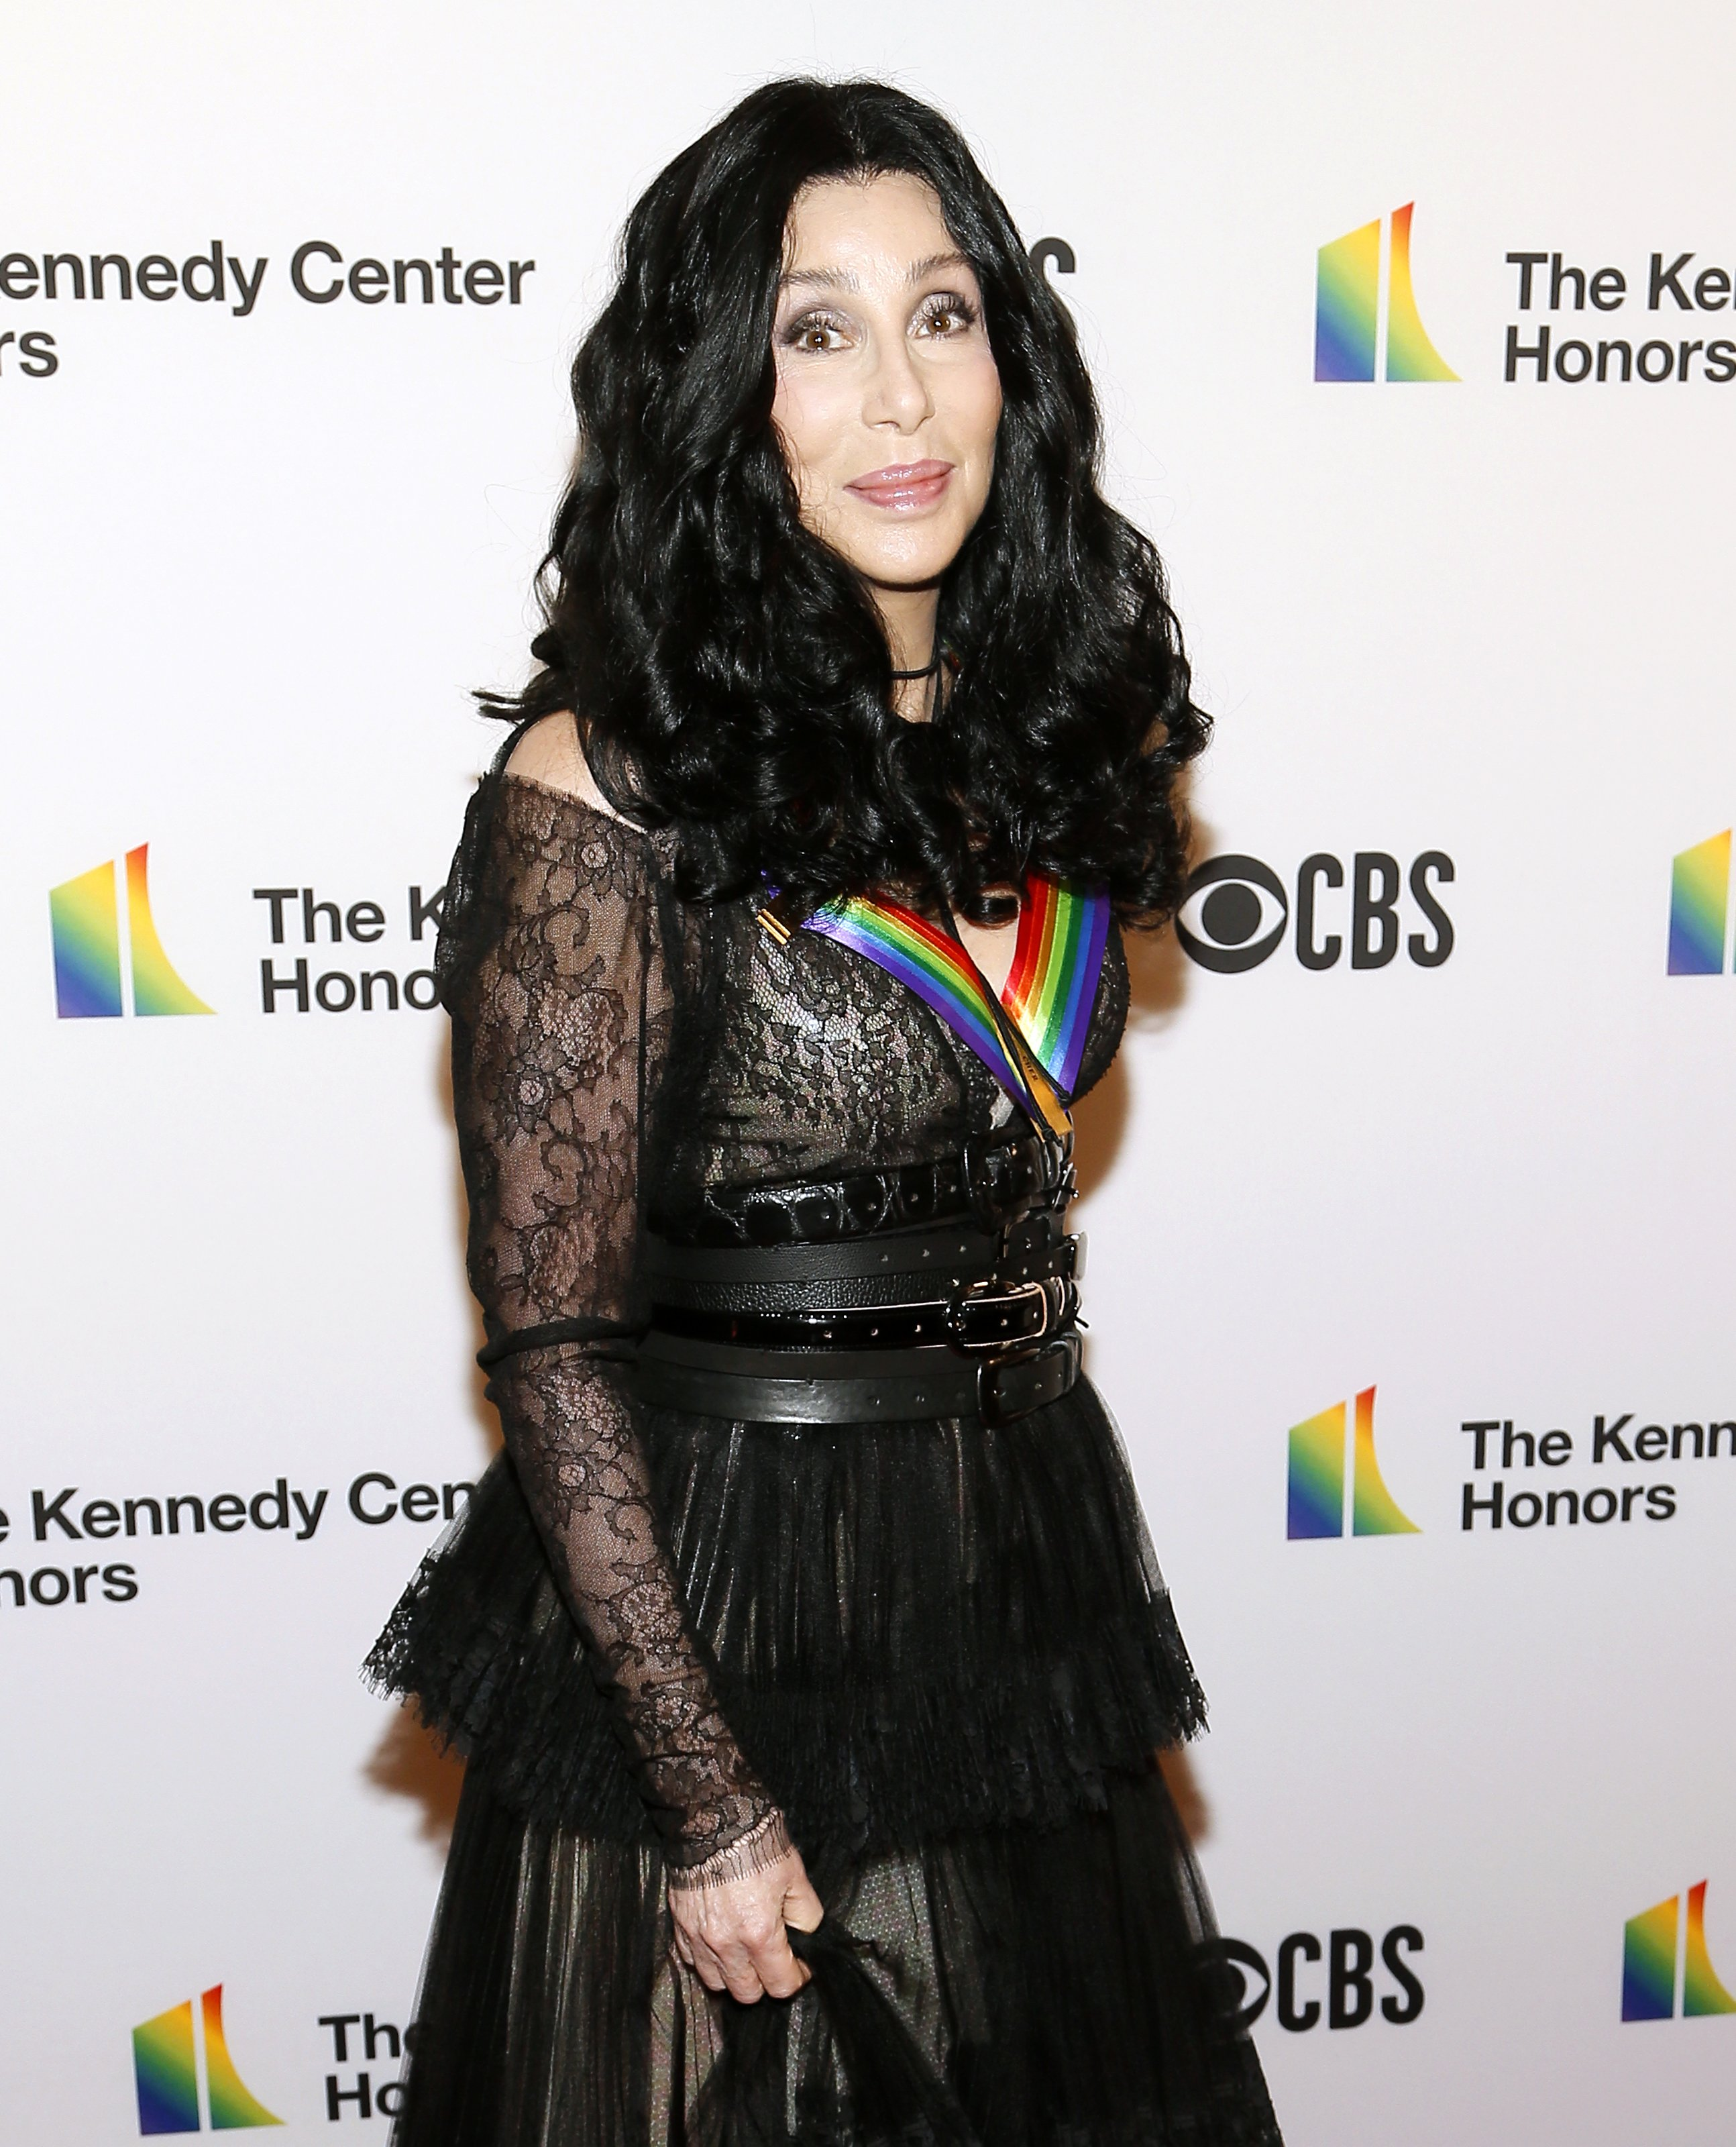 Cher arrives at the 2018 Kennedy Center Honors on December 02, 2018, in Washington, DC. | Source: Getty Images.